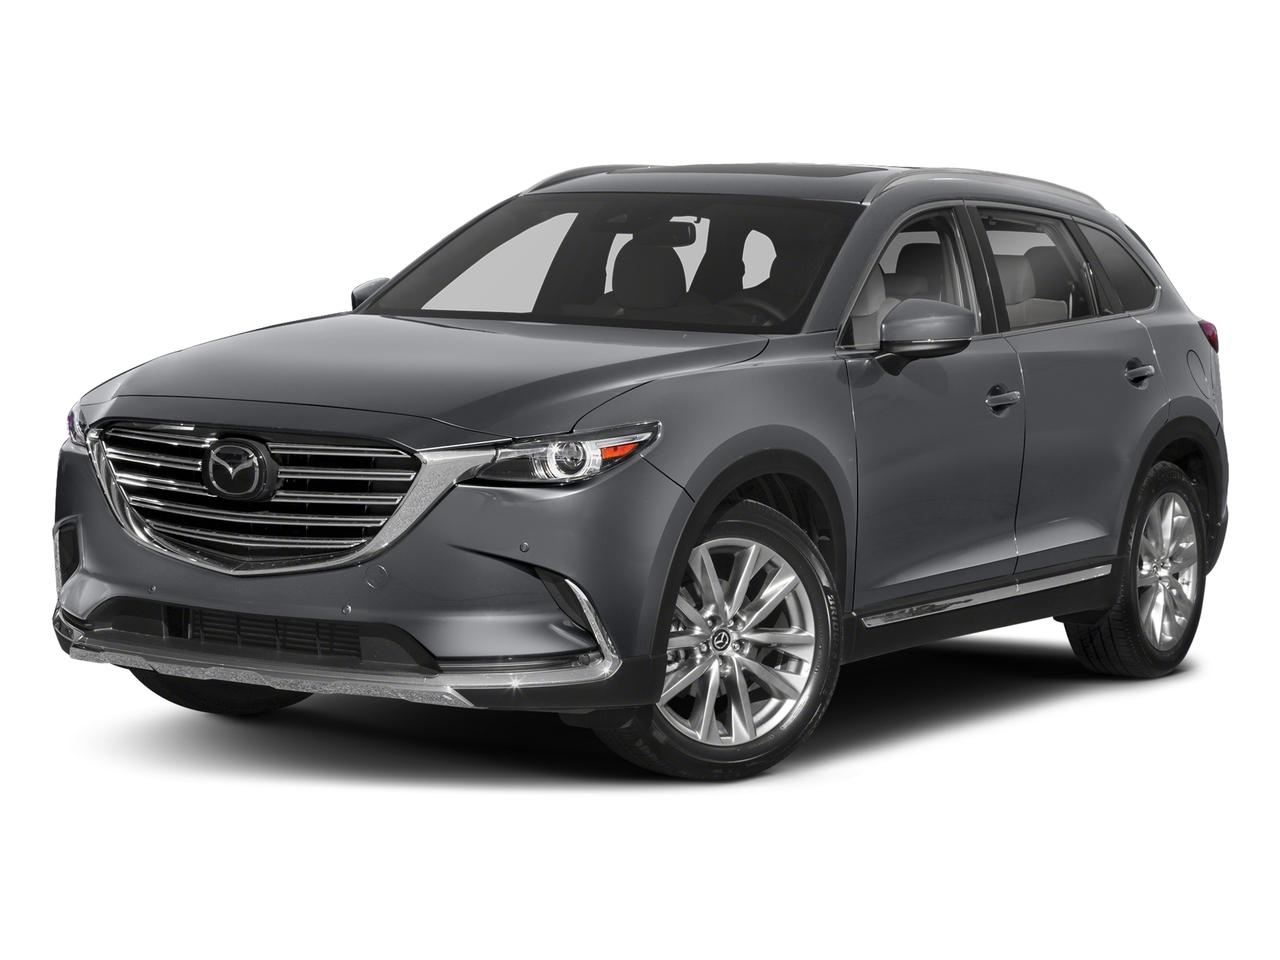 2018 Mazda CX-9 Vehicle Photo in Rockville, MD 20852